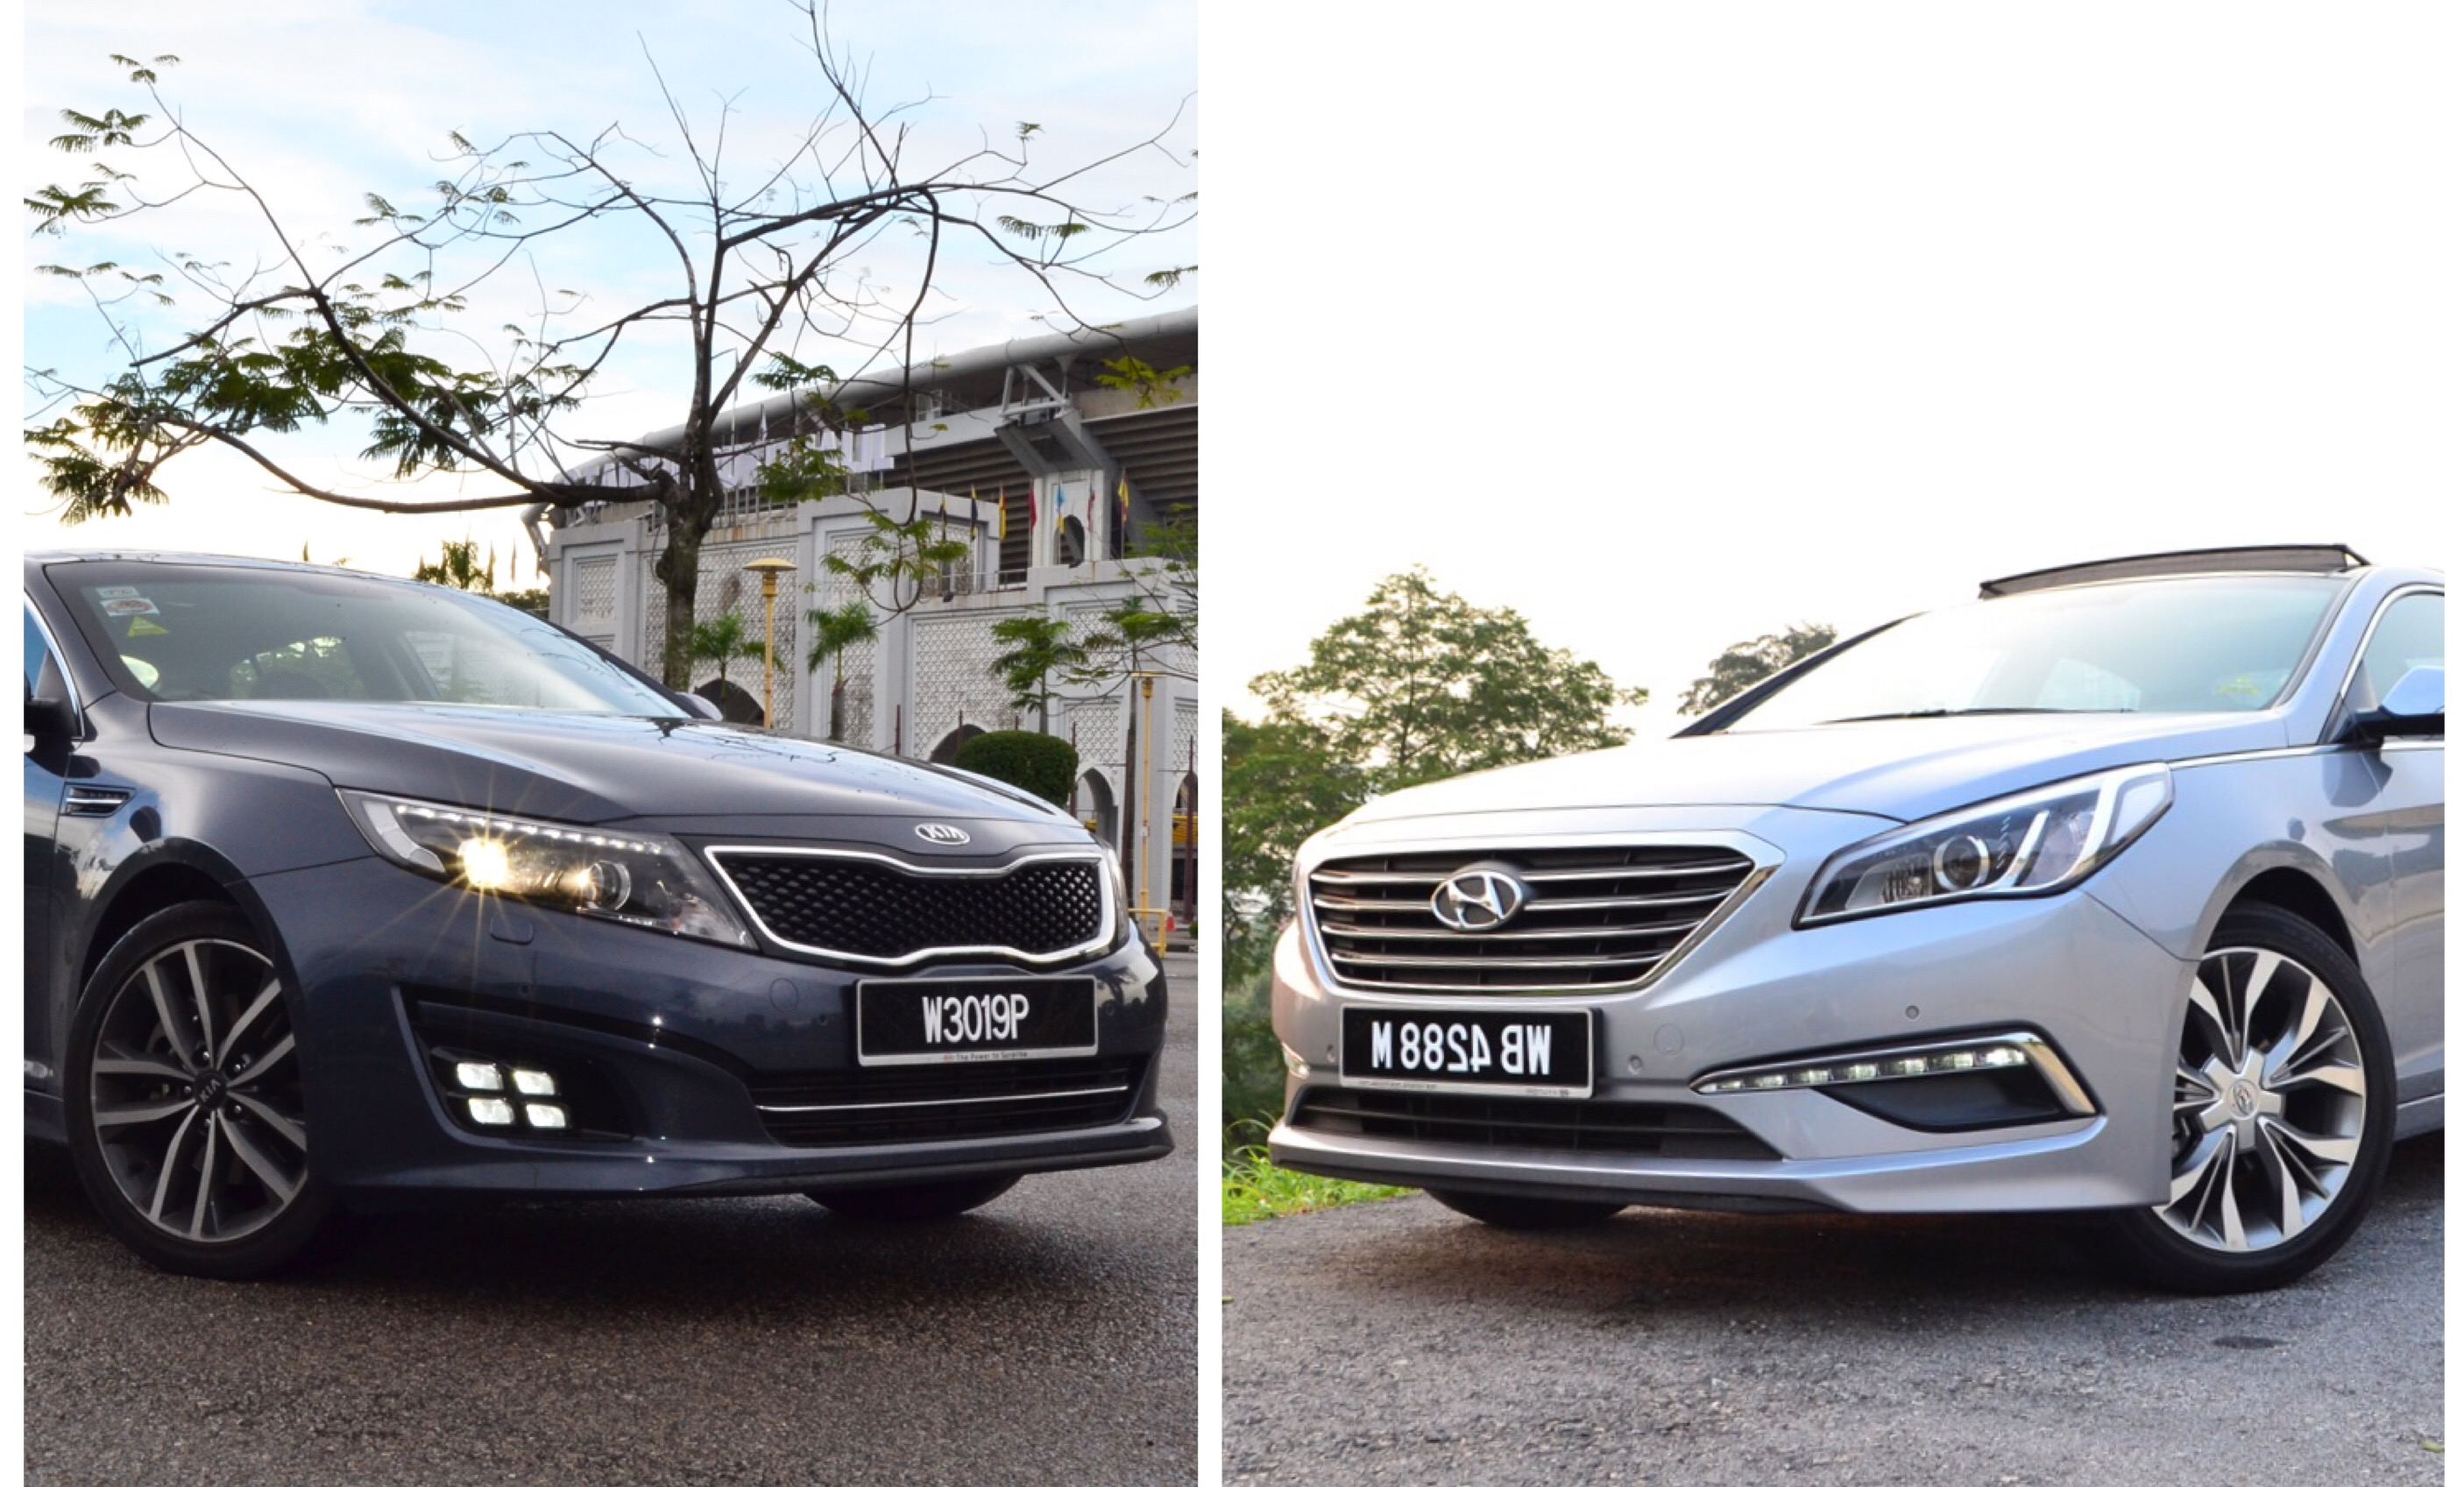 The New Kia Optima K5 Vs Hyundai Sonata Casual Or Formal